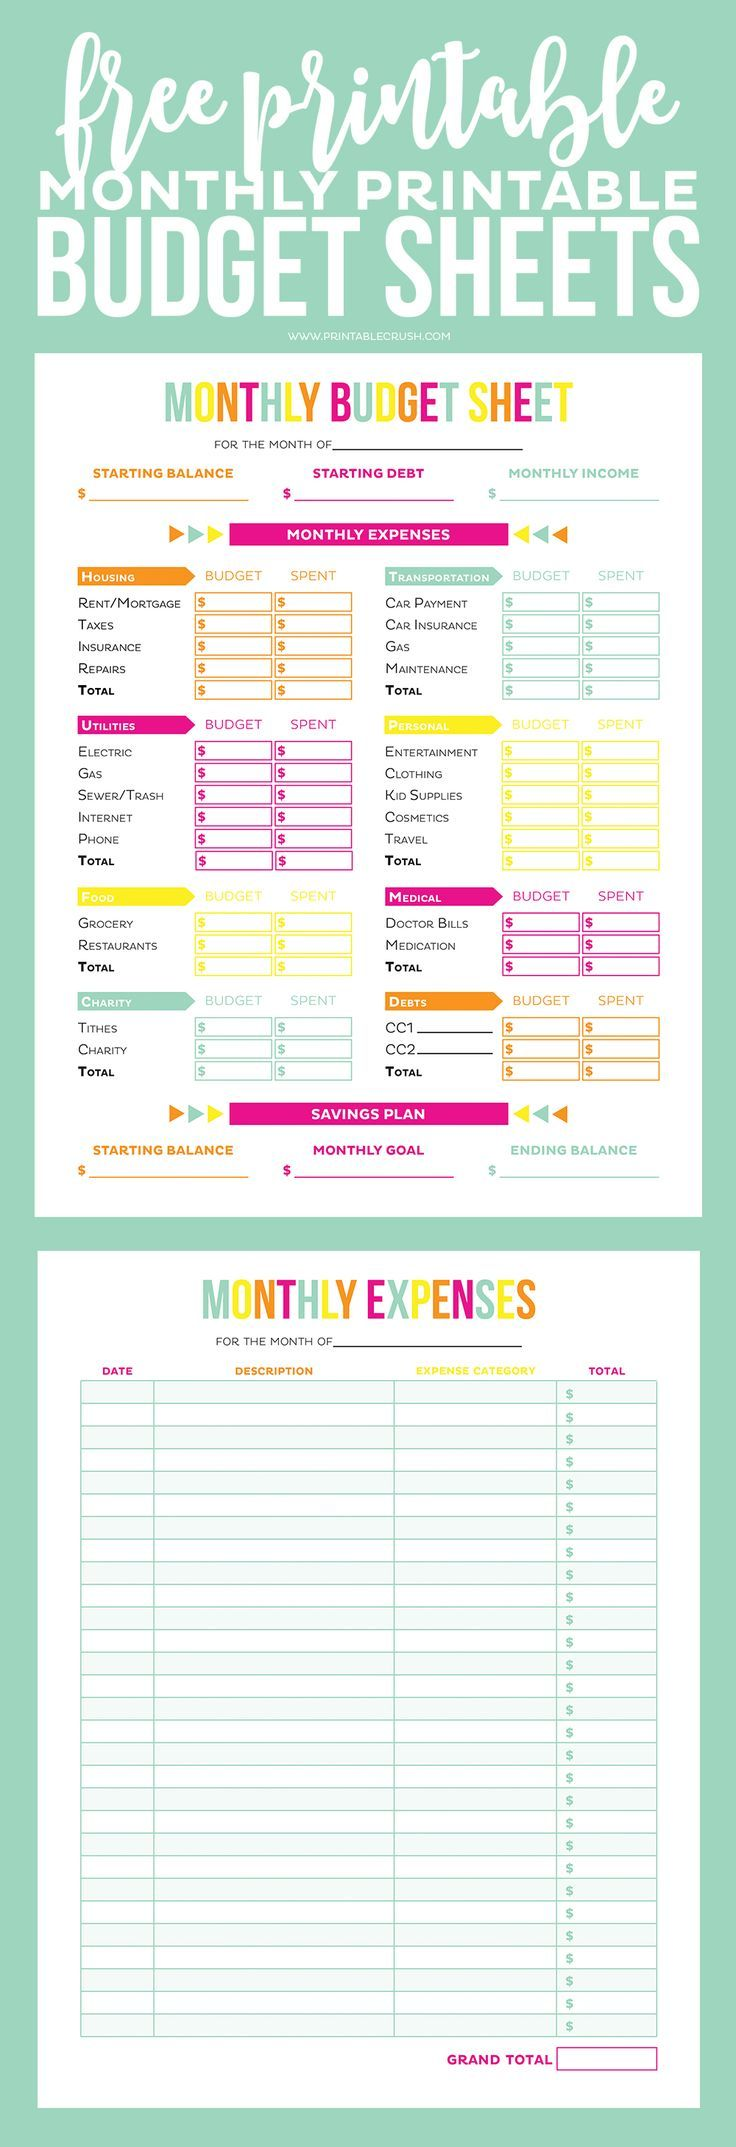 Worksheets Budgeting Worksheets Free best 25 printable budget sheets ideas on pinterest monthly get your finances in order with these free includes and